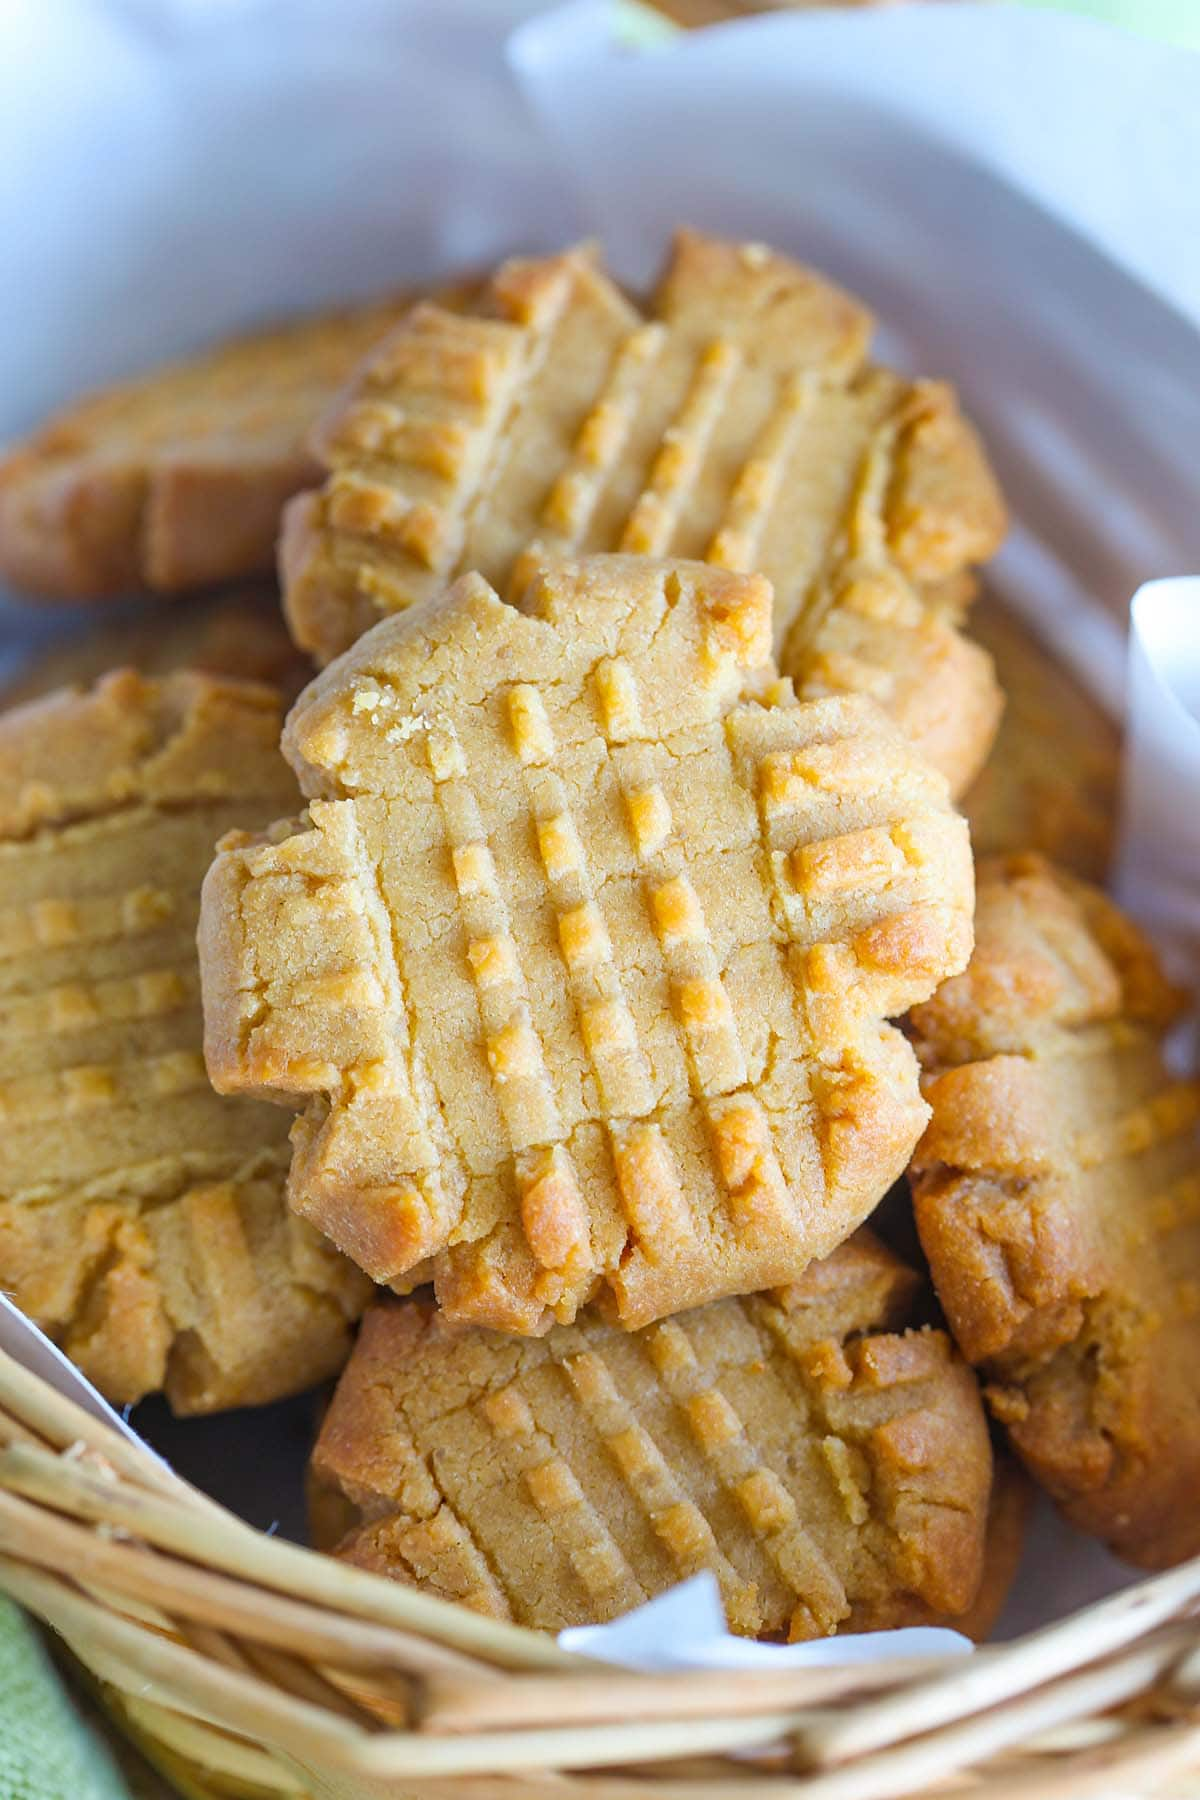 Peanut butter cookies in a baking tray.